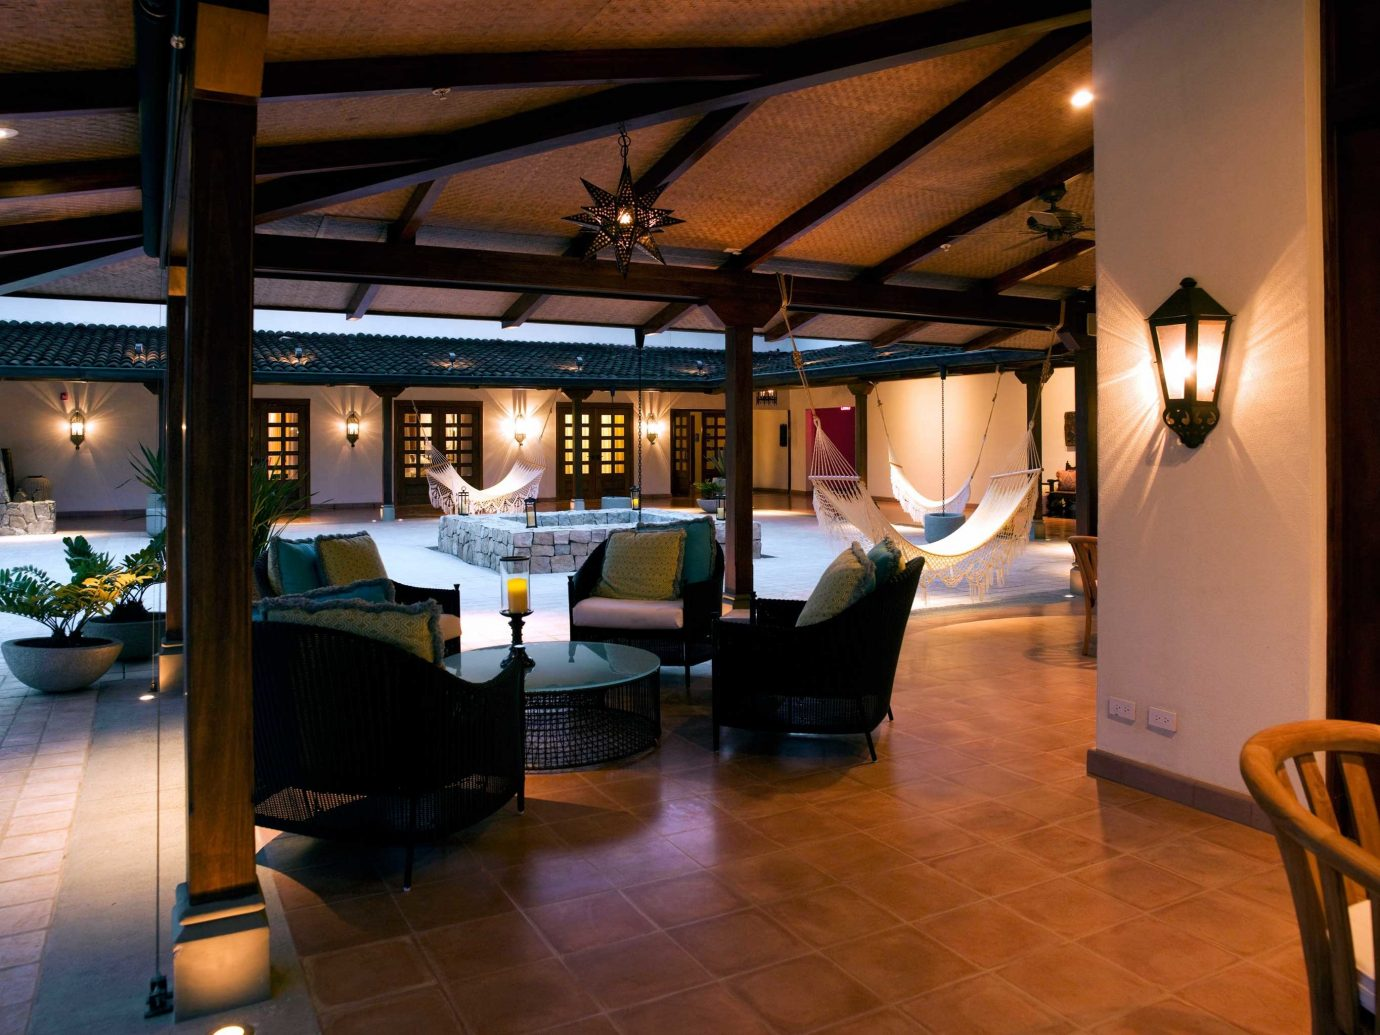 Lobby at JW Marriott Guanacaste in Costa Rica